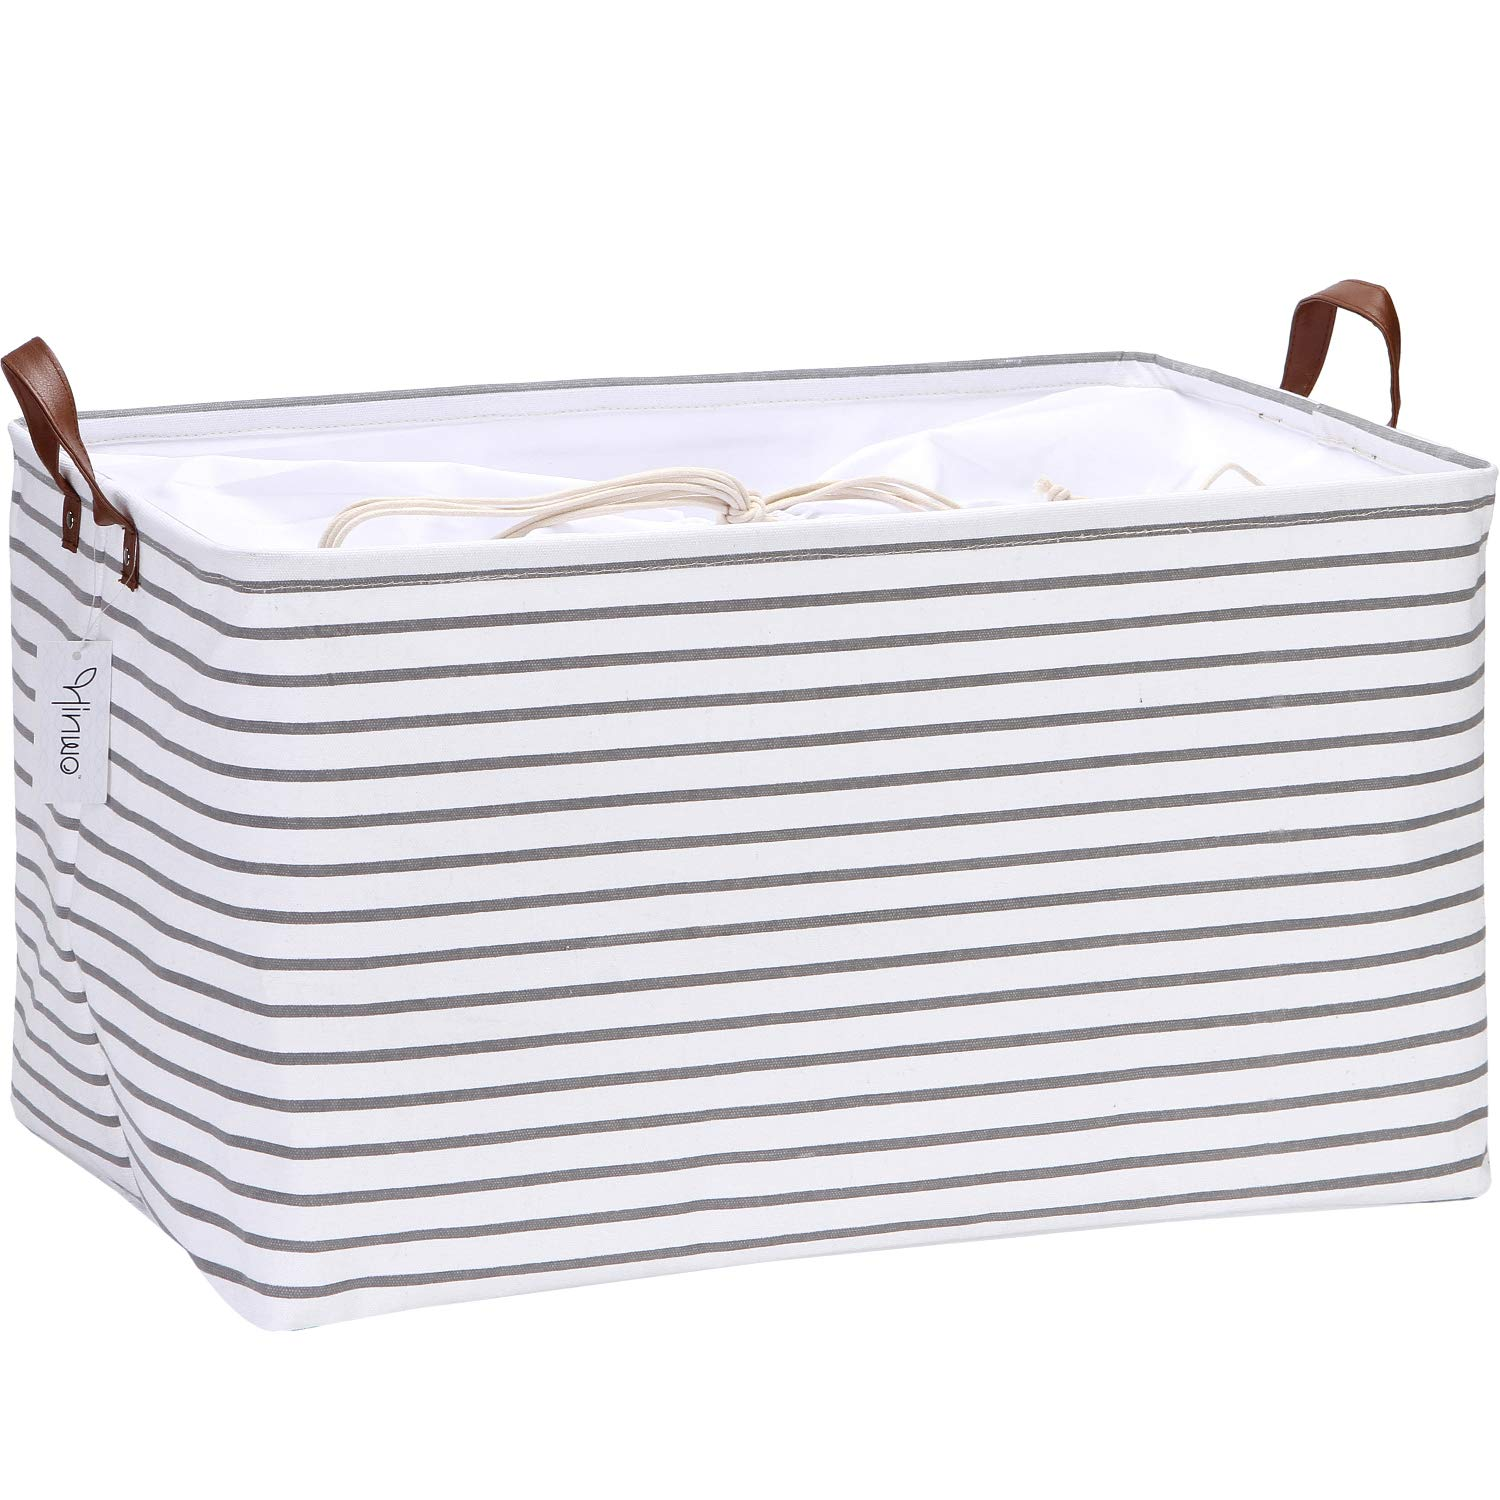 Hinwo 70L Extra Large Capacity Storage Basket Canvas Fabric Storage Bin Collapsible Storage Box with PU Leather Handles and Drawstring Closure, 22 by 15 inches, Waterproof Inner Layer, Grey Stripe